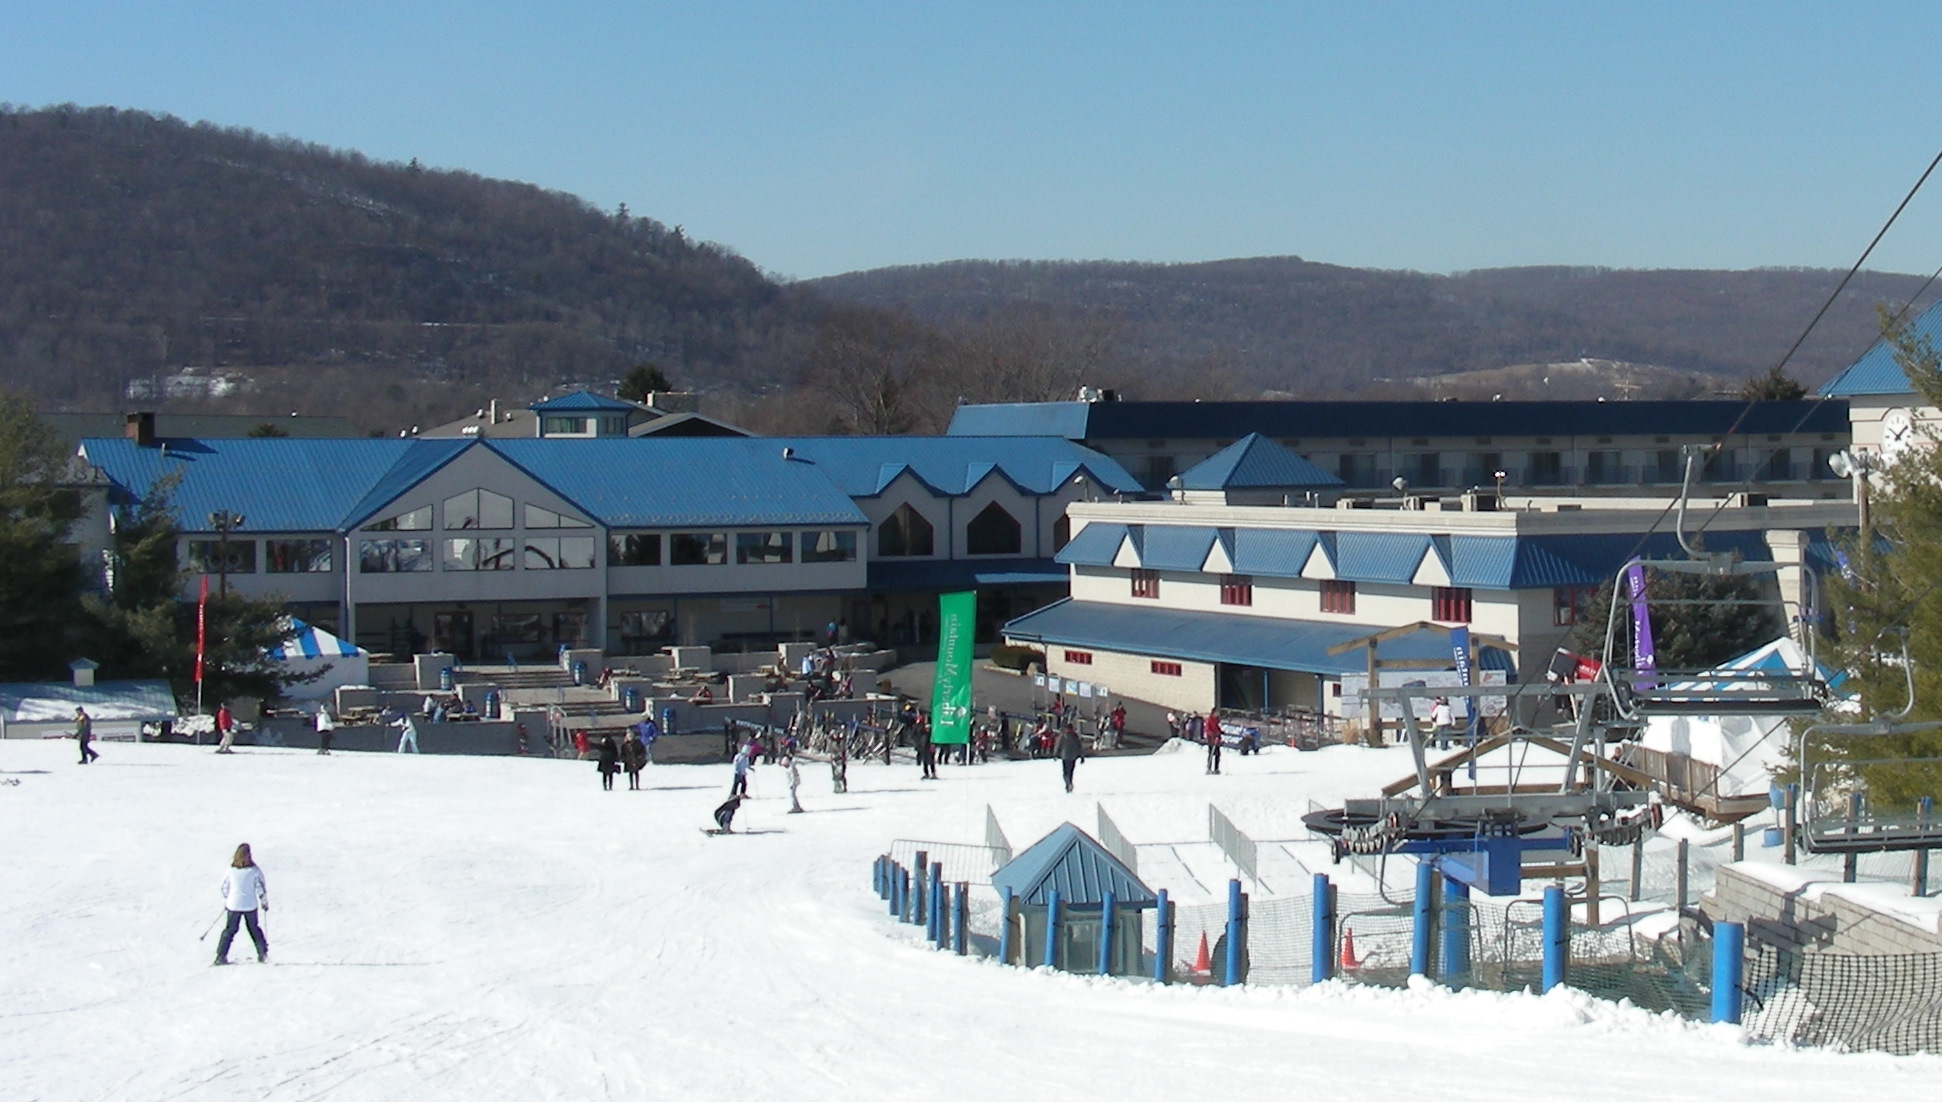 liberty mountain resort - wikiwand